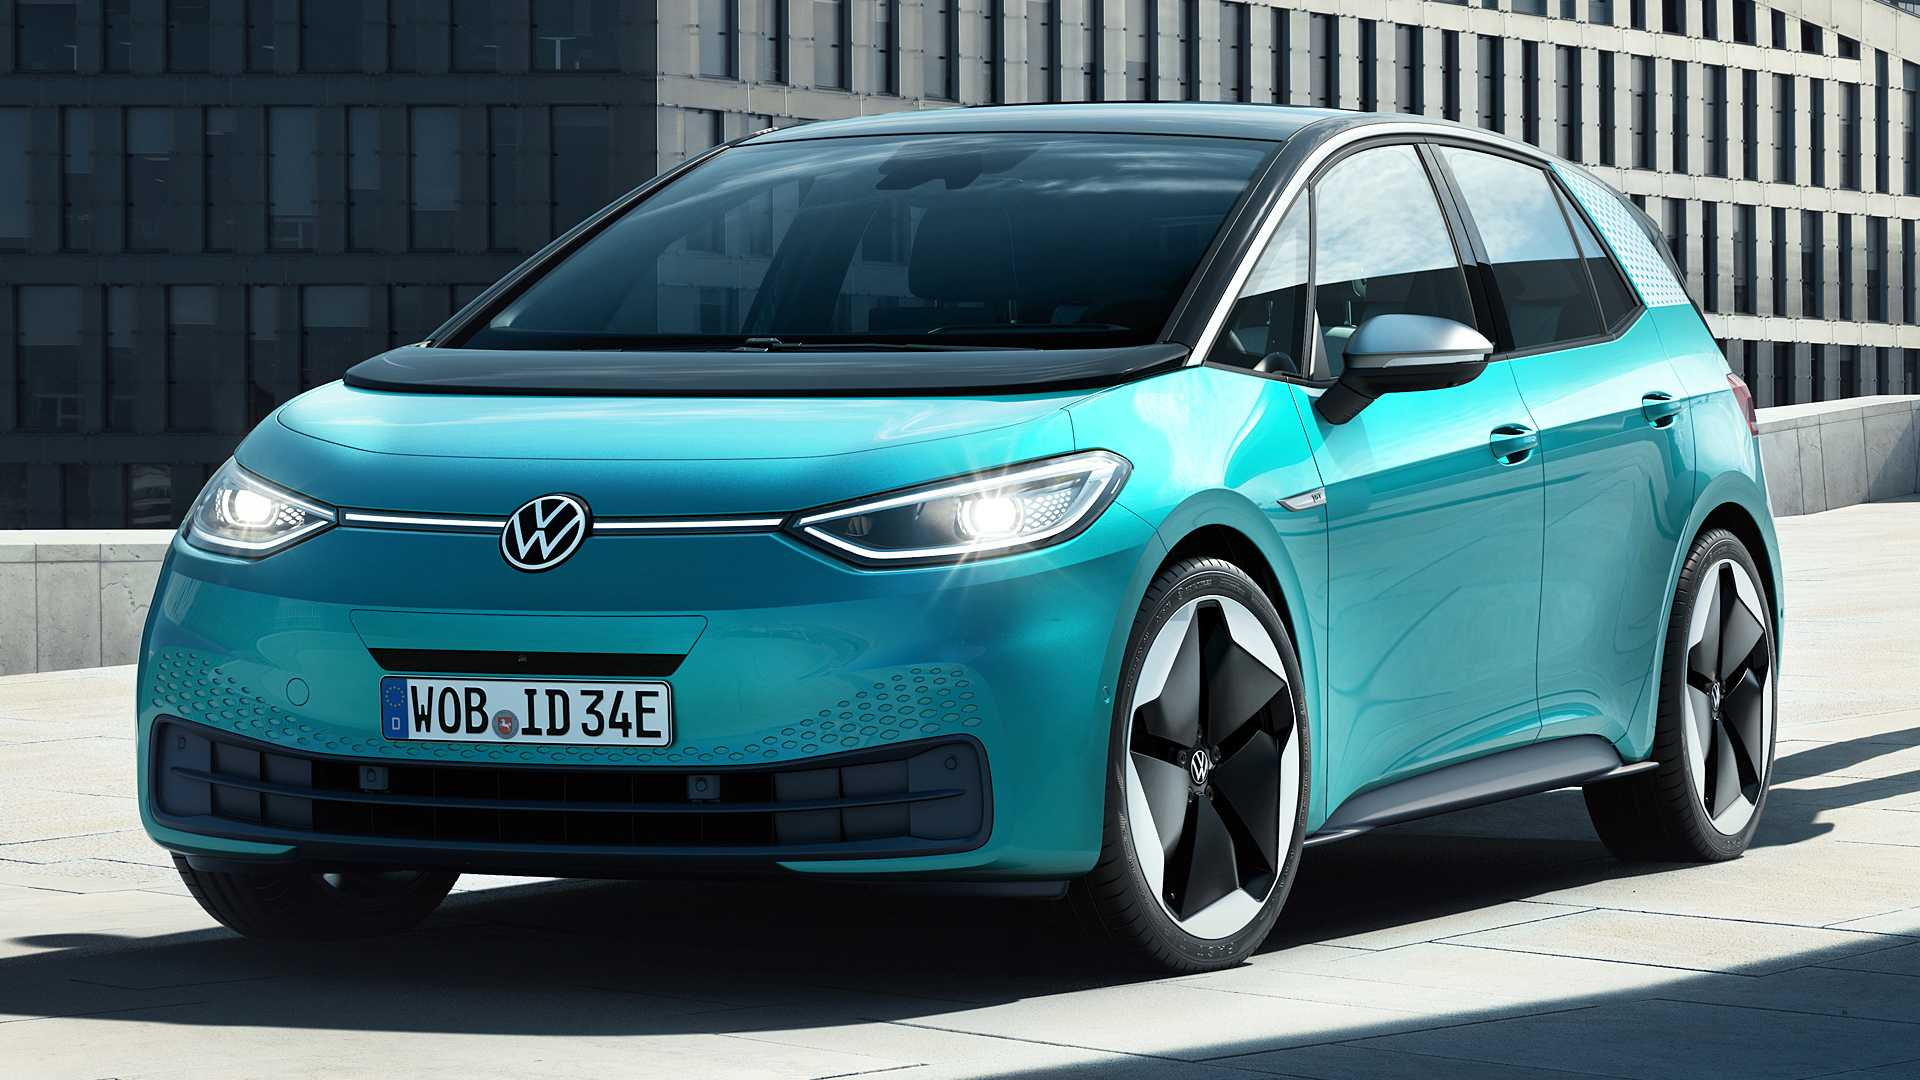 VW Groups Vows To Launch 75 EVs, 60 Hybrids By 2029